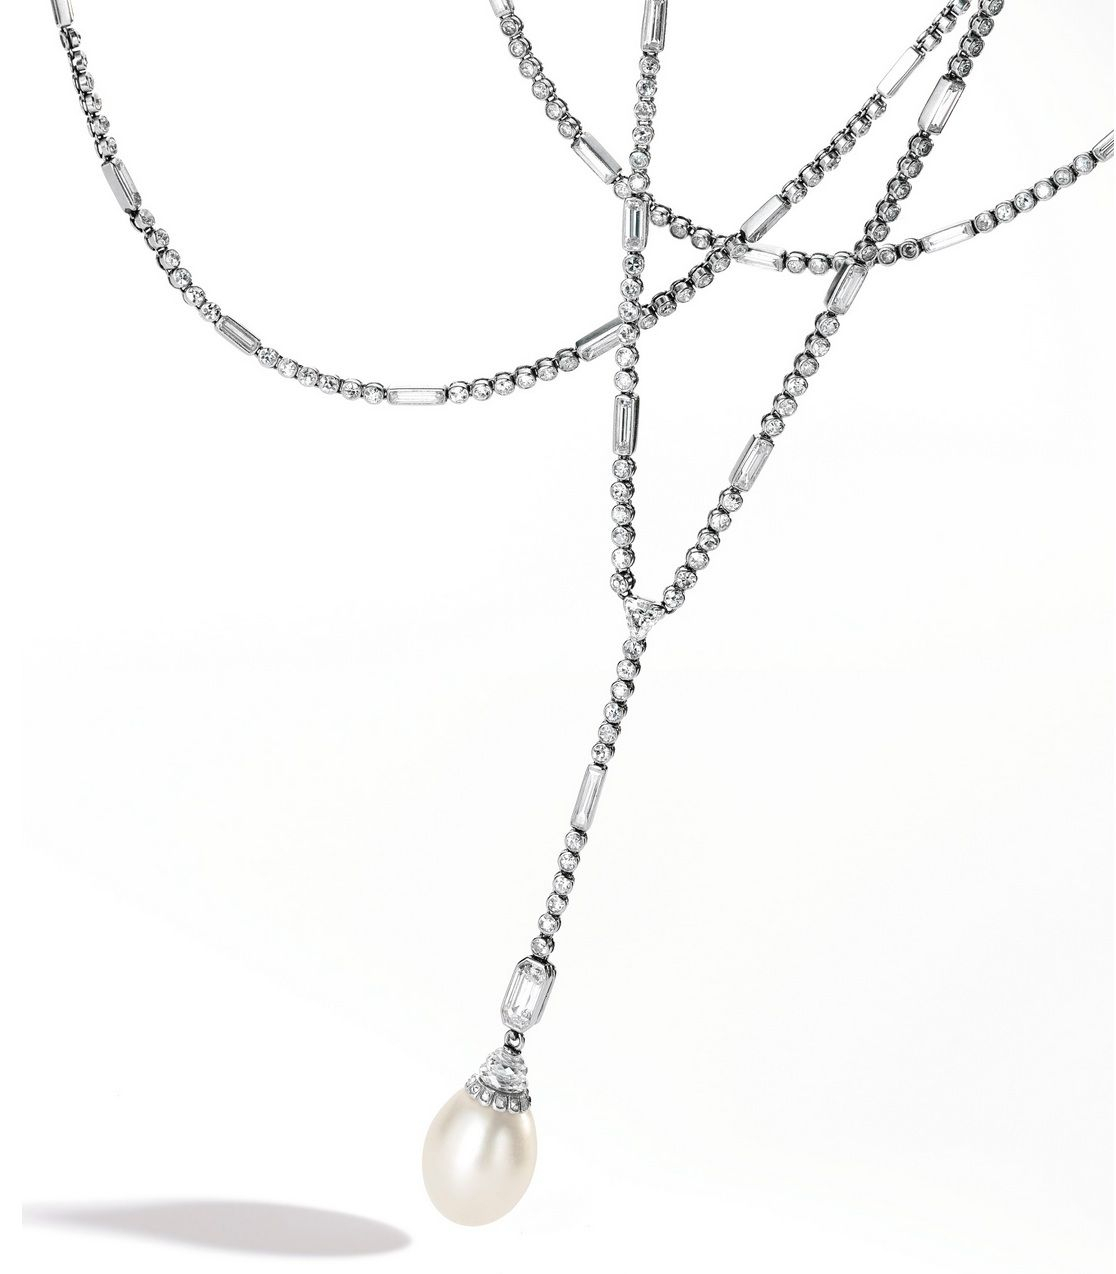 Lot 353 – Platinum, Natural Pearl And Diamond Sautoir Pertaining To Most Recently Released Diamond Sautoir Necklaces In Platinum (View 19 of 25)